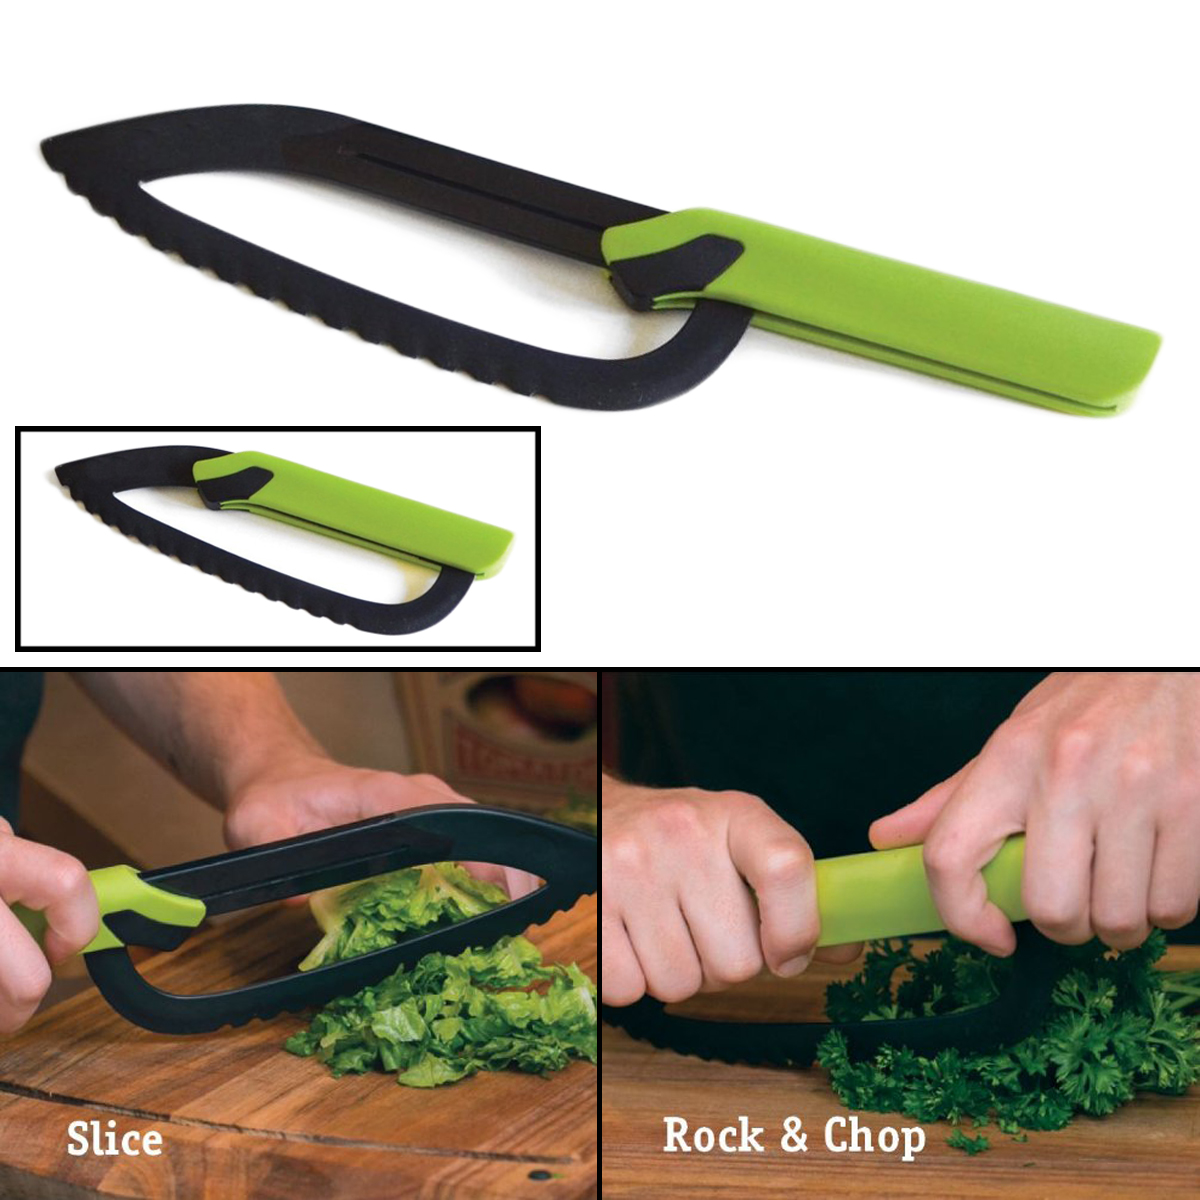 Rock n Slice In'a Snap 2-In-1 Kitchen Food Prep Knife Cutting Slicing Chopping